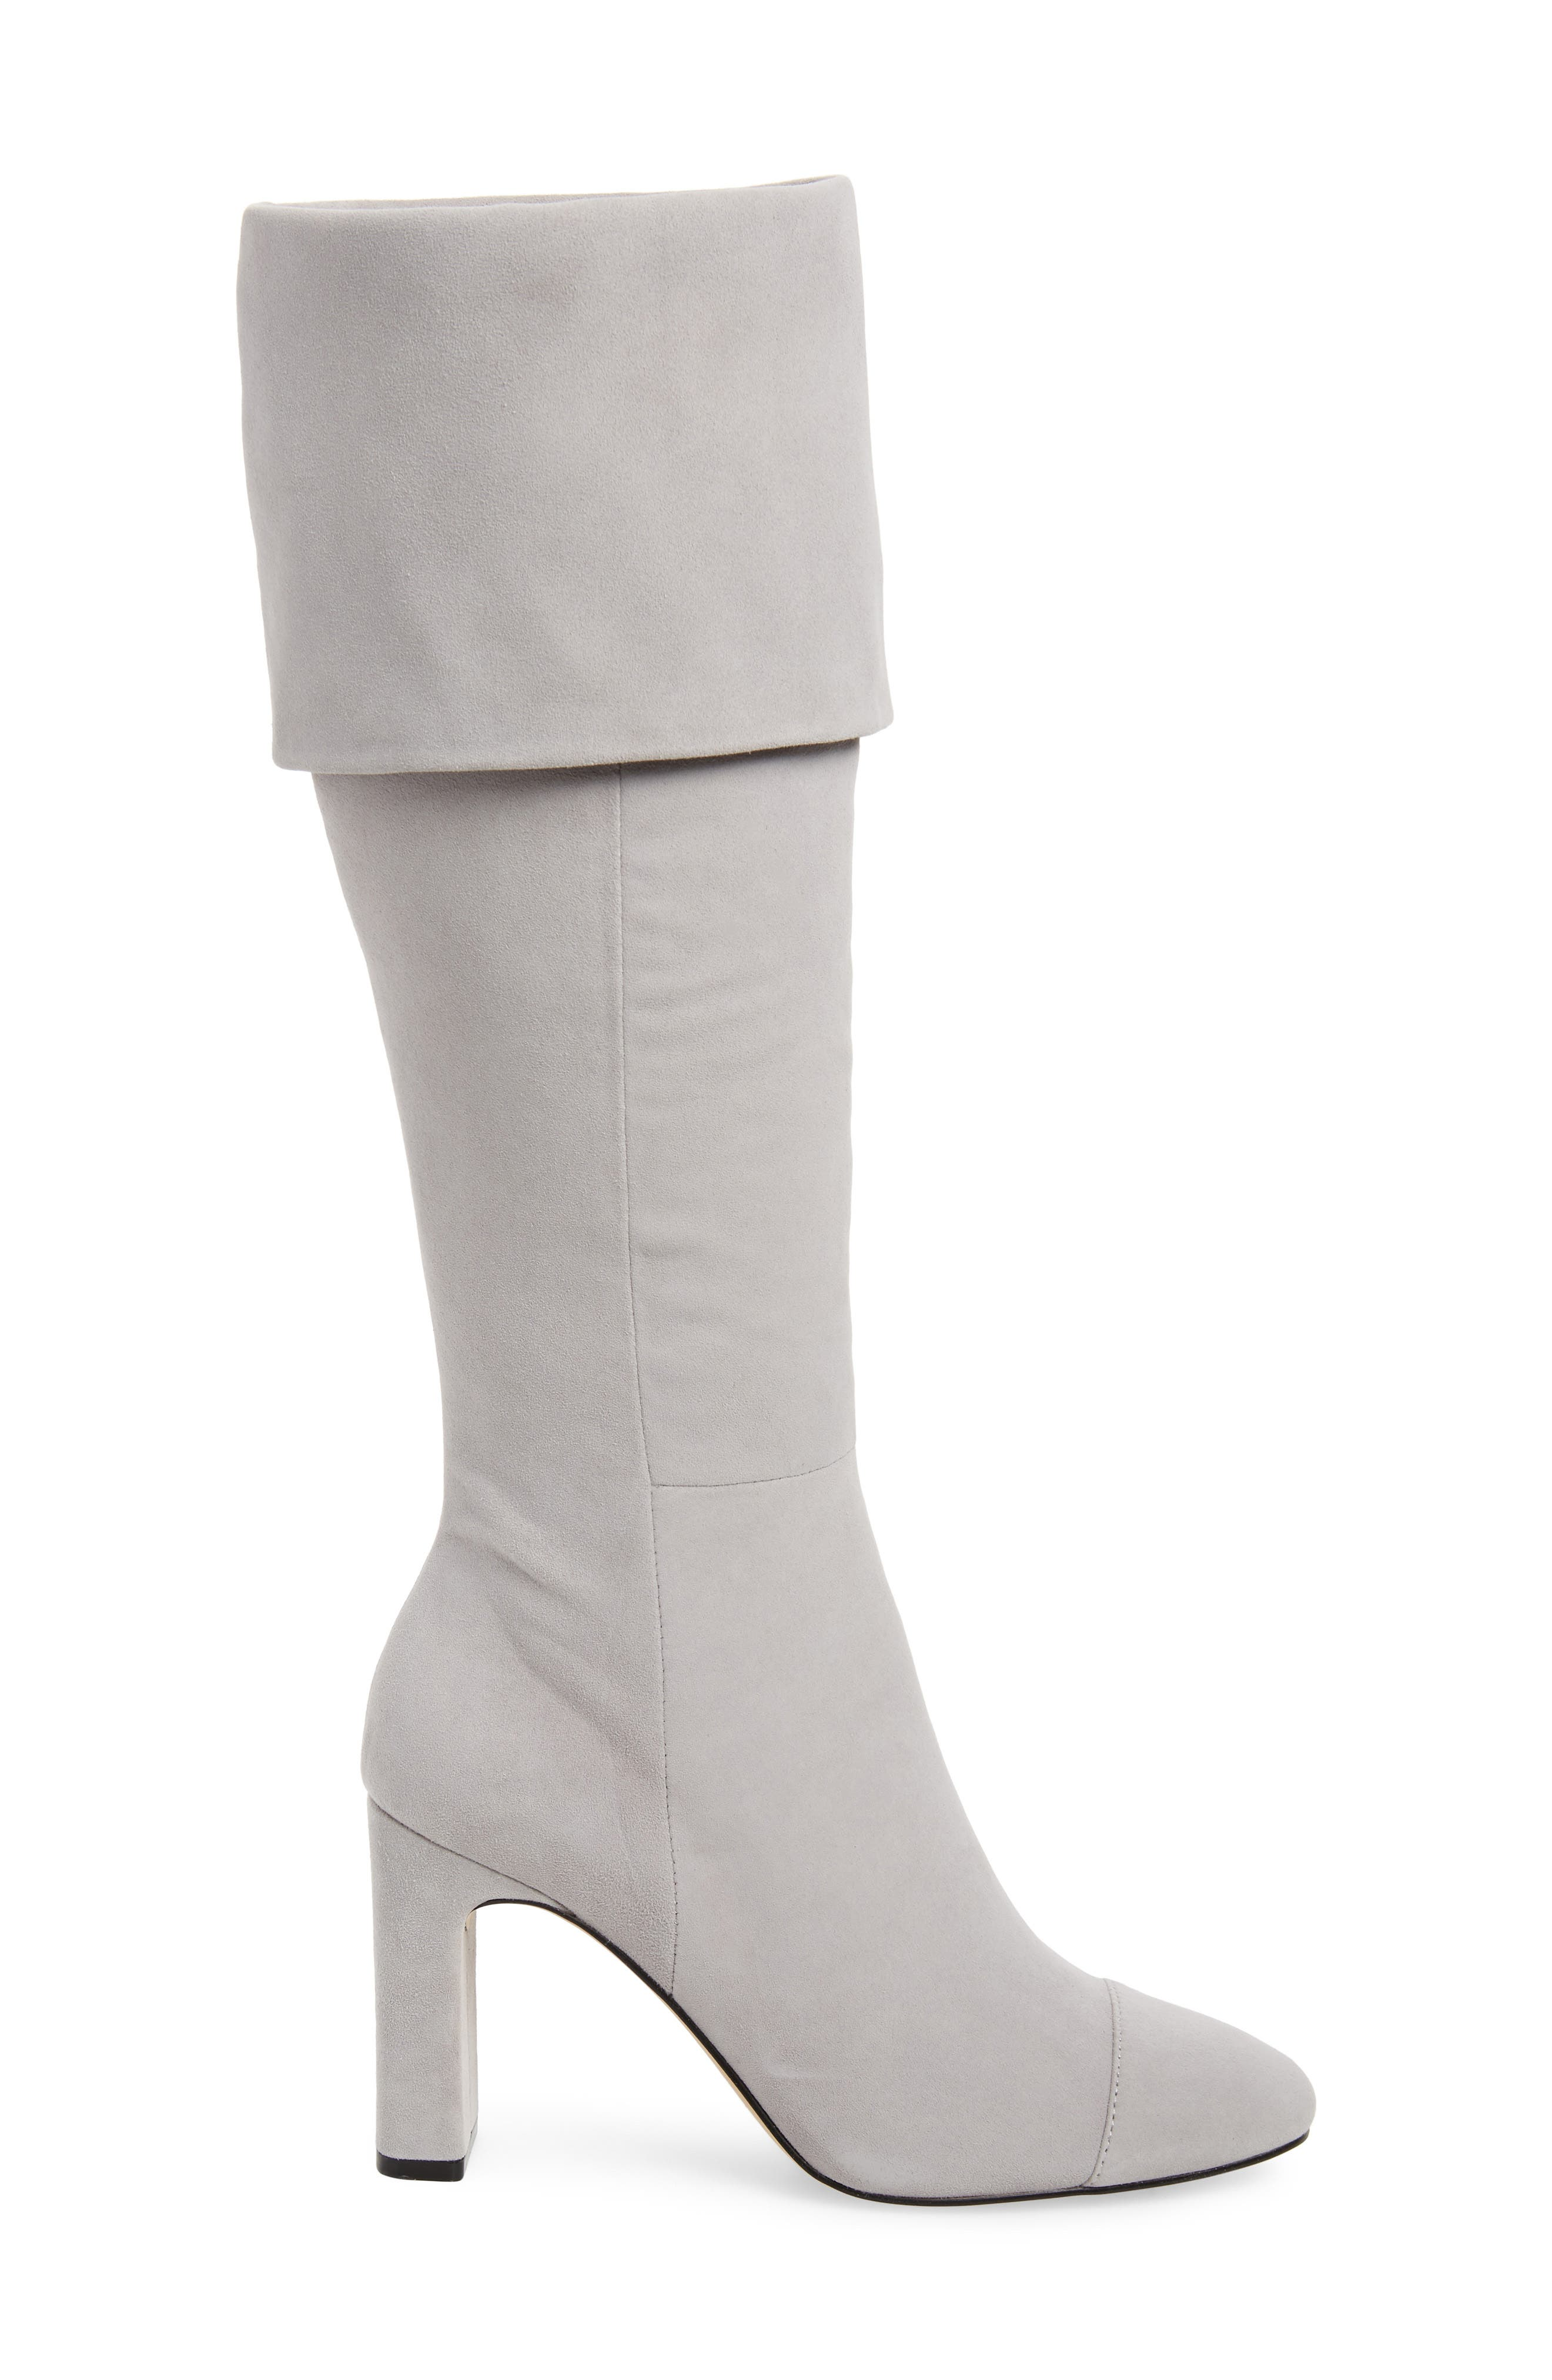 Mia Knee High Boot,                             Alternate thumbnail 4, color,                             LIGHT GREY SUEDE